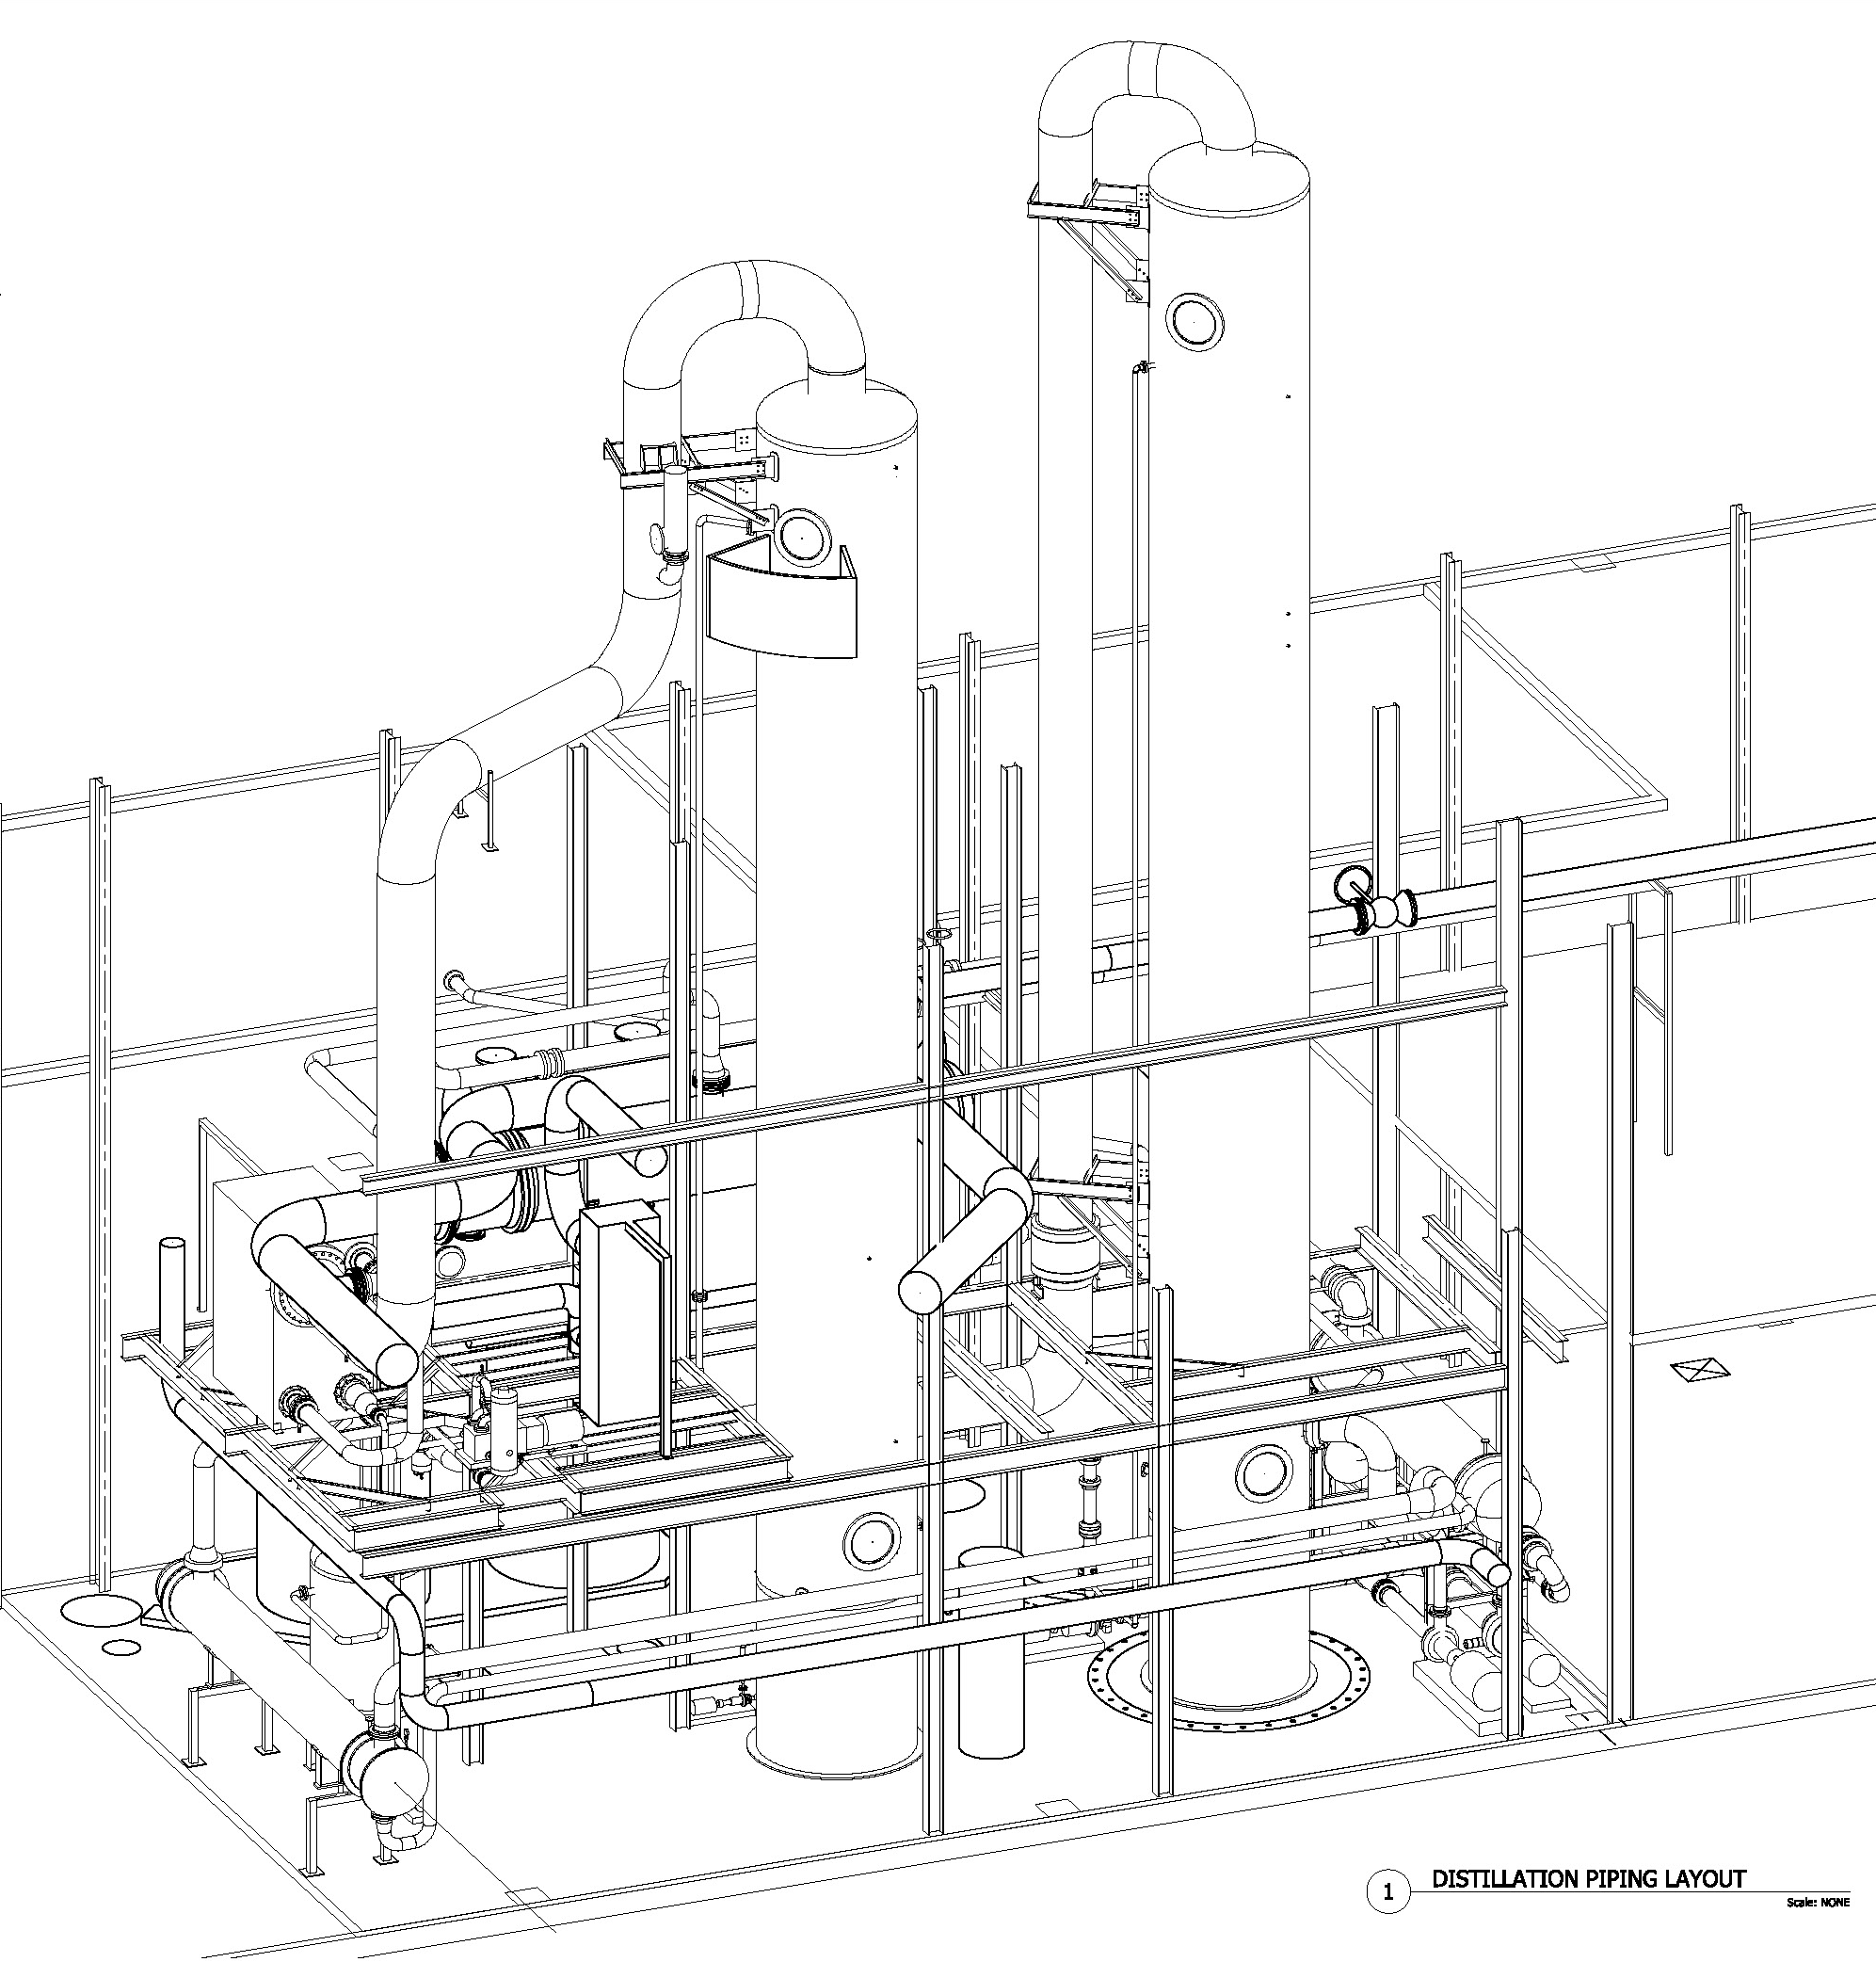 Cellerate Bolt On Cellulosic Ethanol Plant Nelson Engineering Piping Layout Pictures Click To View Full Size